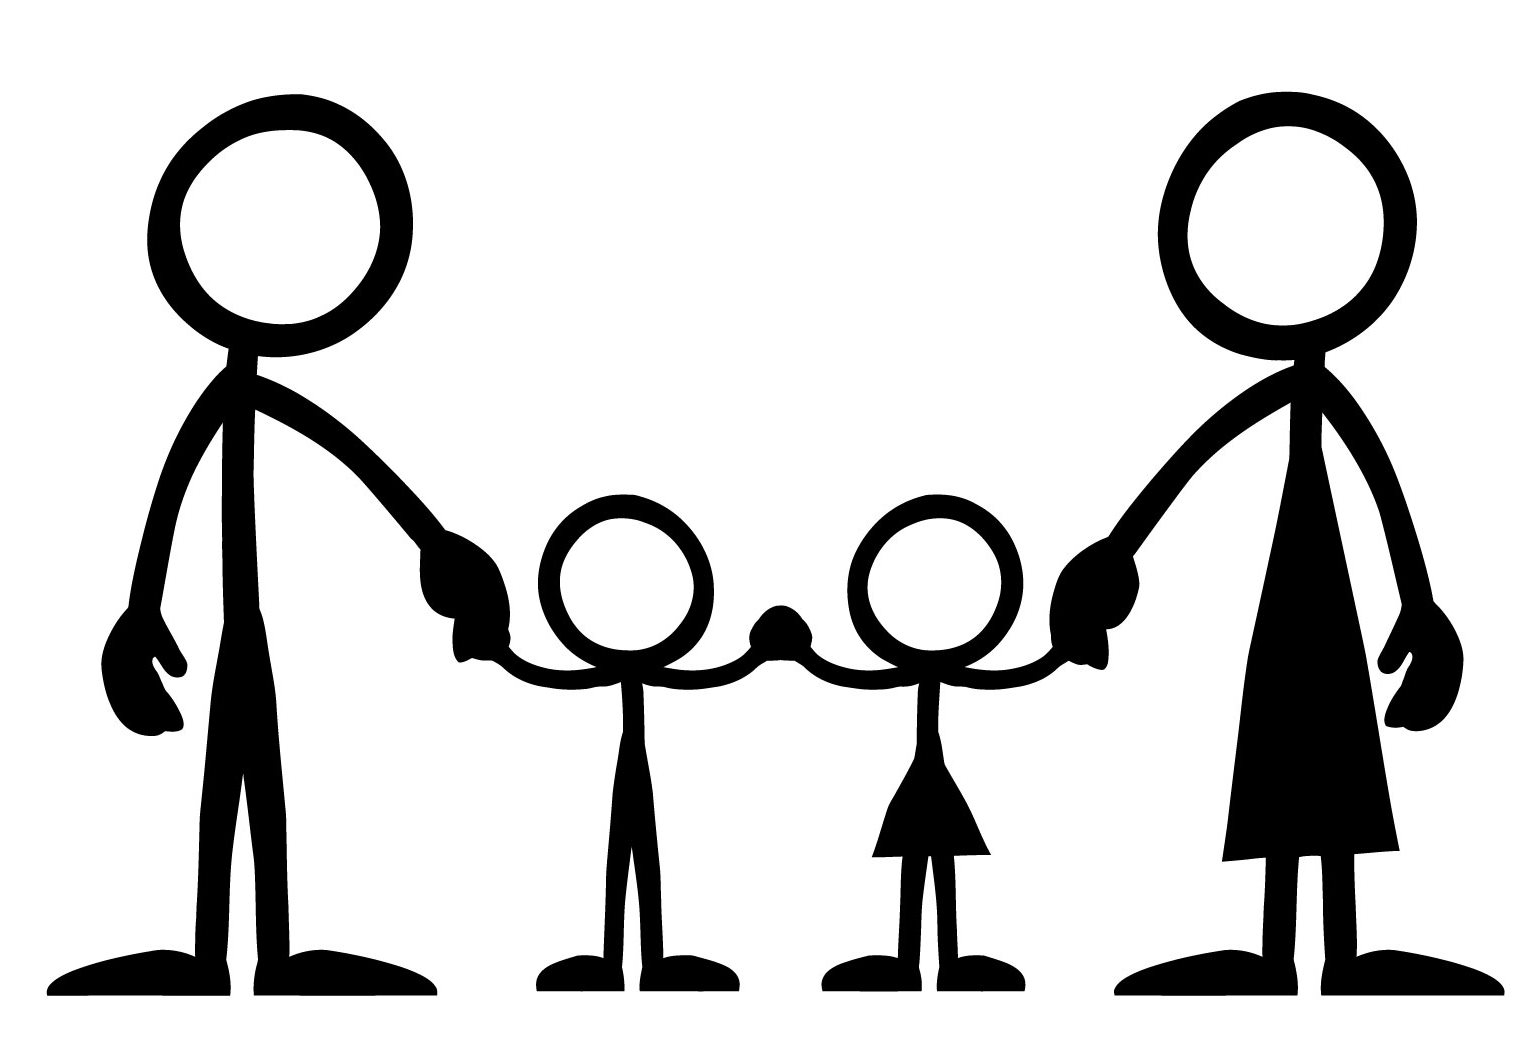 4 person family clipart picture black and white download 35+ Stick Figure Family Clipart | ClipartLook picture black and white download